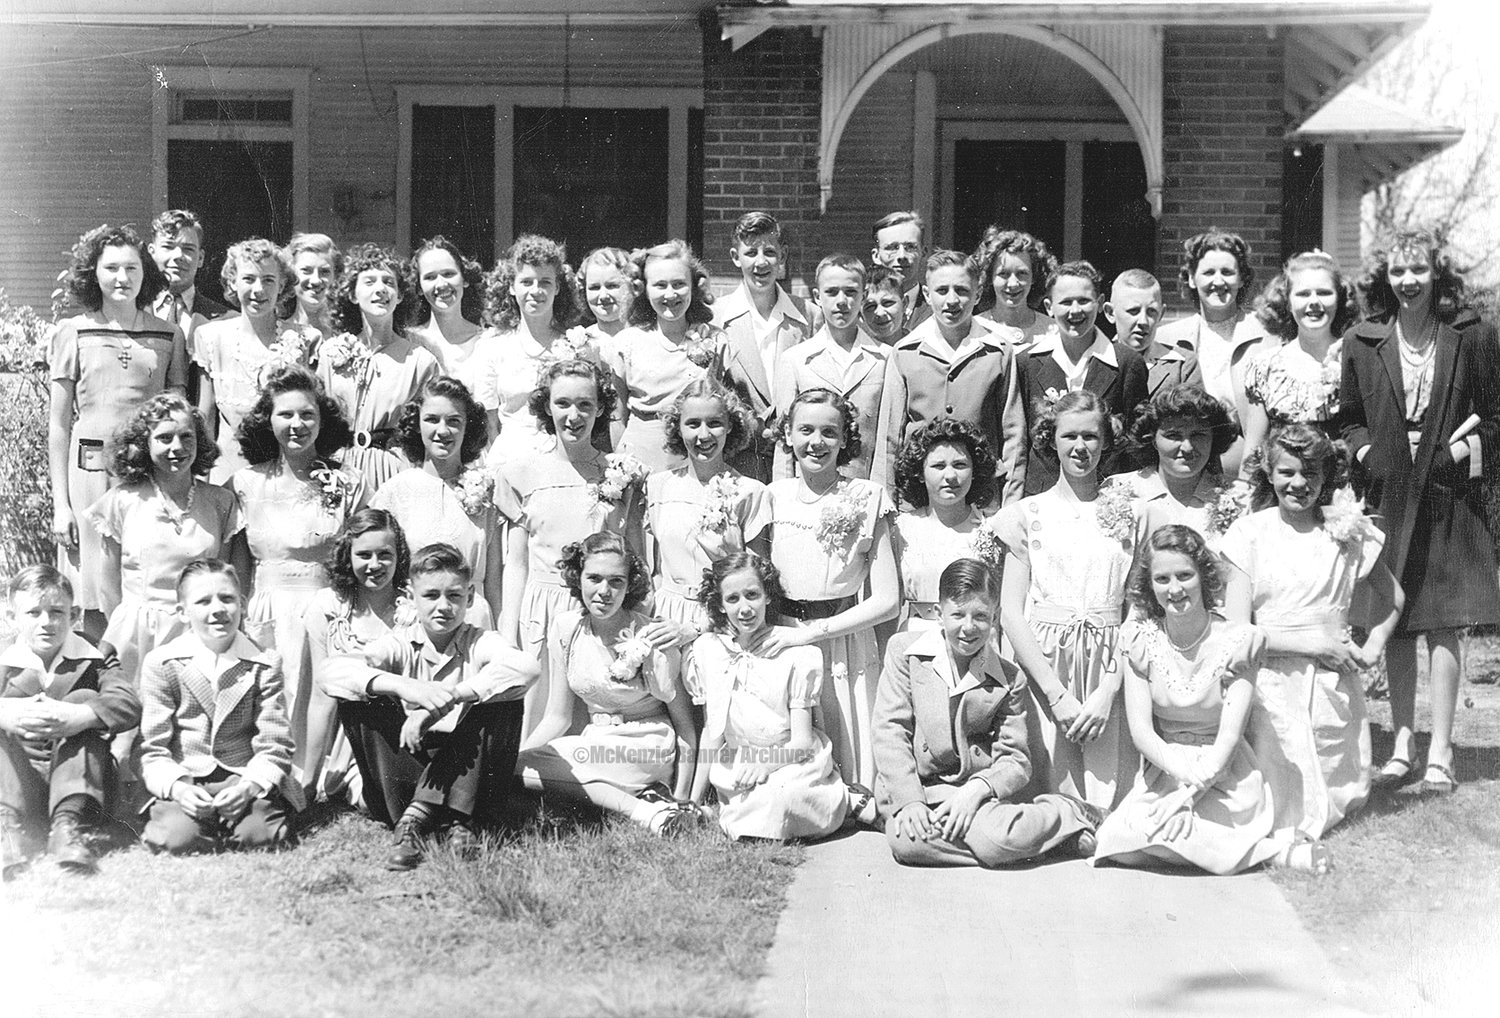 McKenzie Eighth Grade Graduation, 1948, at Miss Ophie Everett's home on Magnolia Ave. First Row (L to R): Kenneth Townsend, Billy Hall, Ann Sneed, Gaylon Hickman, Joyce Hill, Marty Carter Highfield, B. W. Hickman, and Martha Wray. Second Row: Arlene Washburn, Maxine Sneed, Joan Montgomery, Mary Ann Young, Betty Carroll, Mable Claire James, Betty Williams, Sarah Crawford, Lois Williams, and Patty Edwards. Third Row: Rachel Miller, Anita Clark, Gay Ellis, Blanche McDonald, Sara Ann Kirksey, Jimmy Coleman, Frank Galloway, John Ward, Jimmy Montgomery, Phyllis Bunn, and Peggy Butler. Fourth Row: Billy Pinson, Joyce Smith, Violet McElhiney, Helen Pate, J. T. Matheny, Jimmy Pate, Vernette Bannister, and Miss Ophie Everett. Photo submitted by Vernette Hacker.